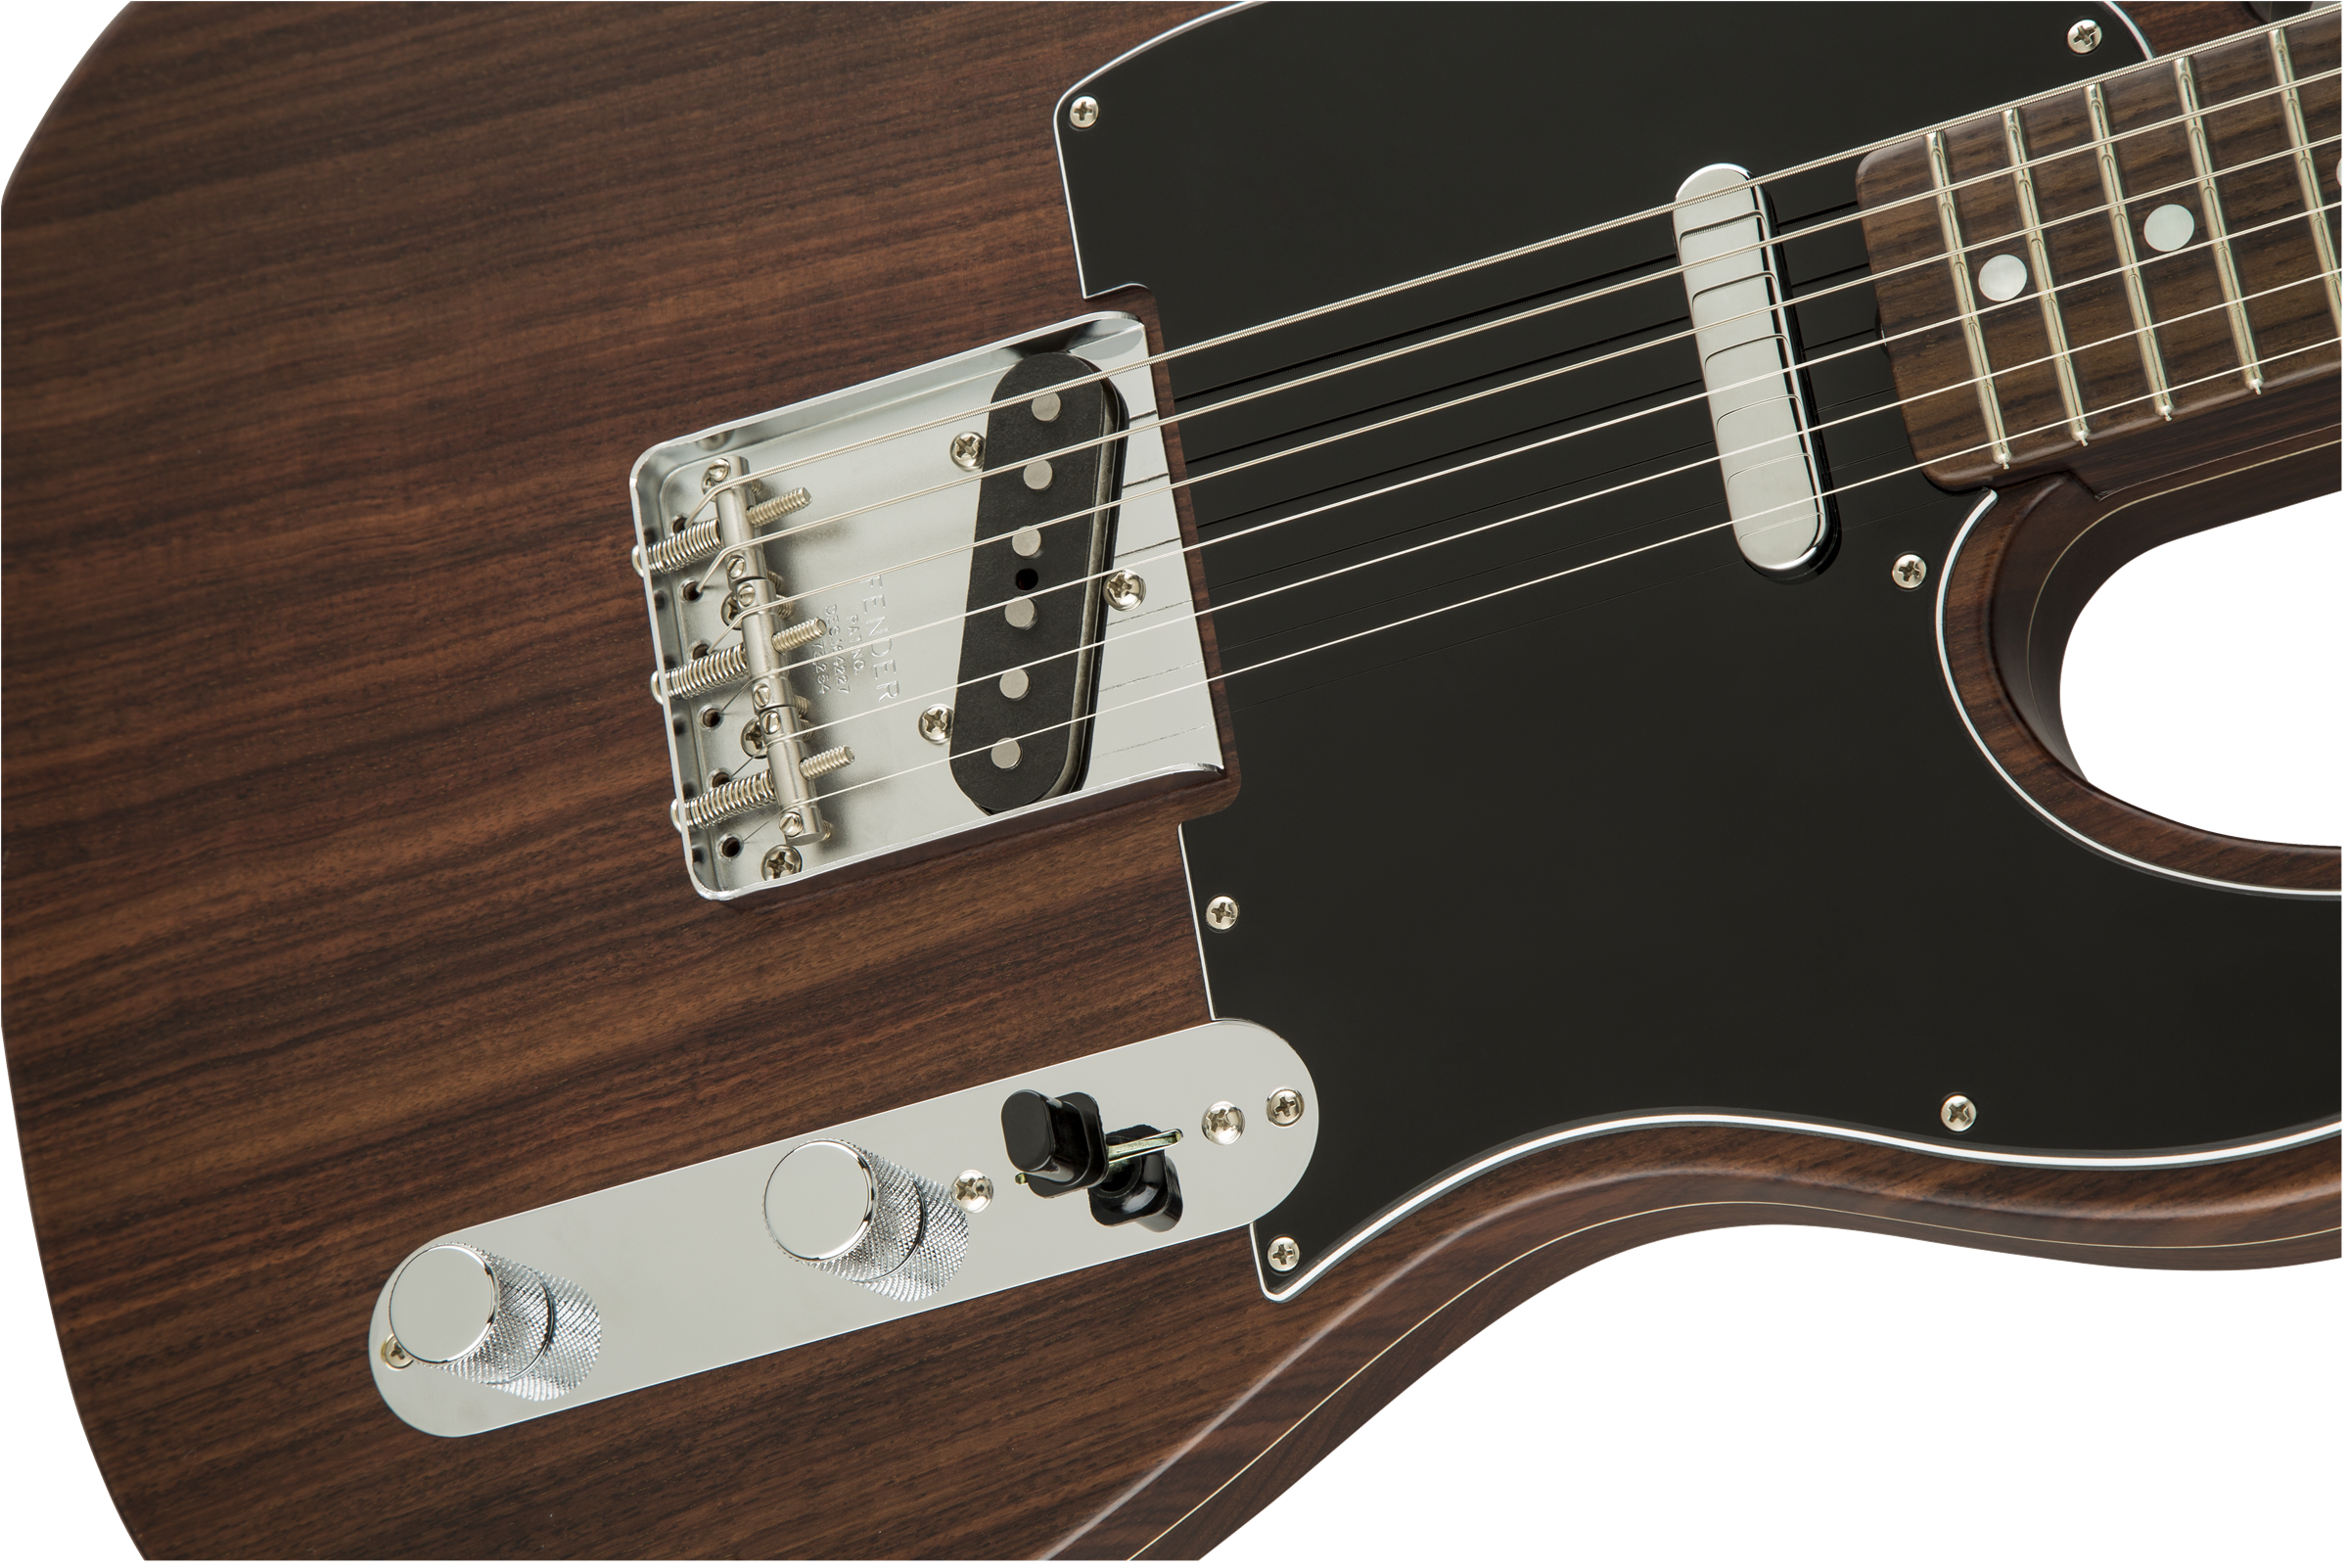 The george harrison tribute rosewood telecaster tribute for The rosewood